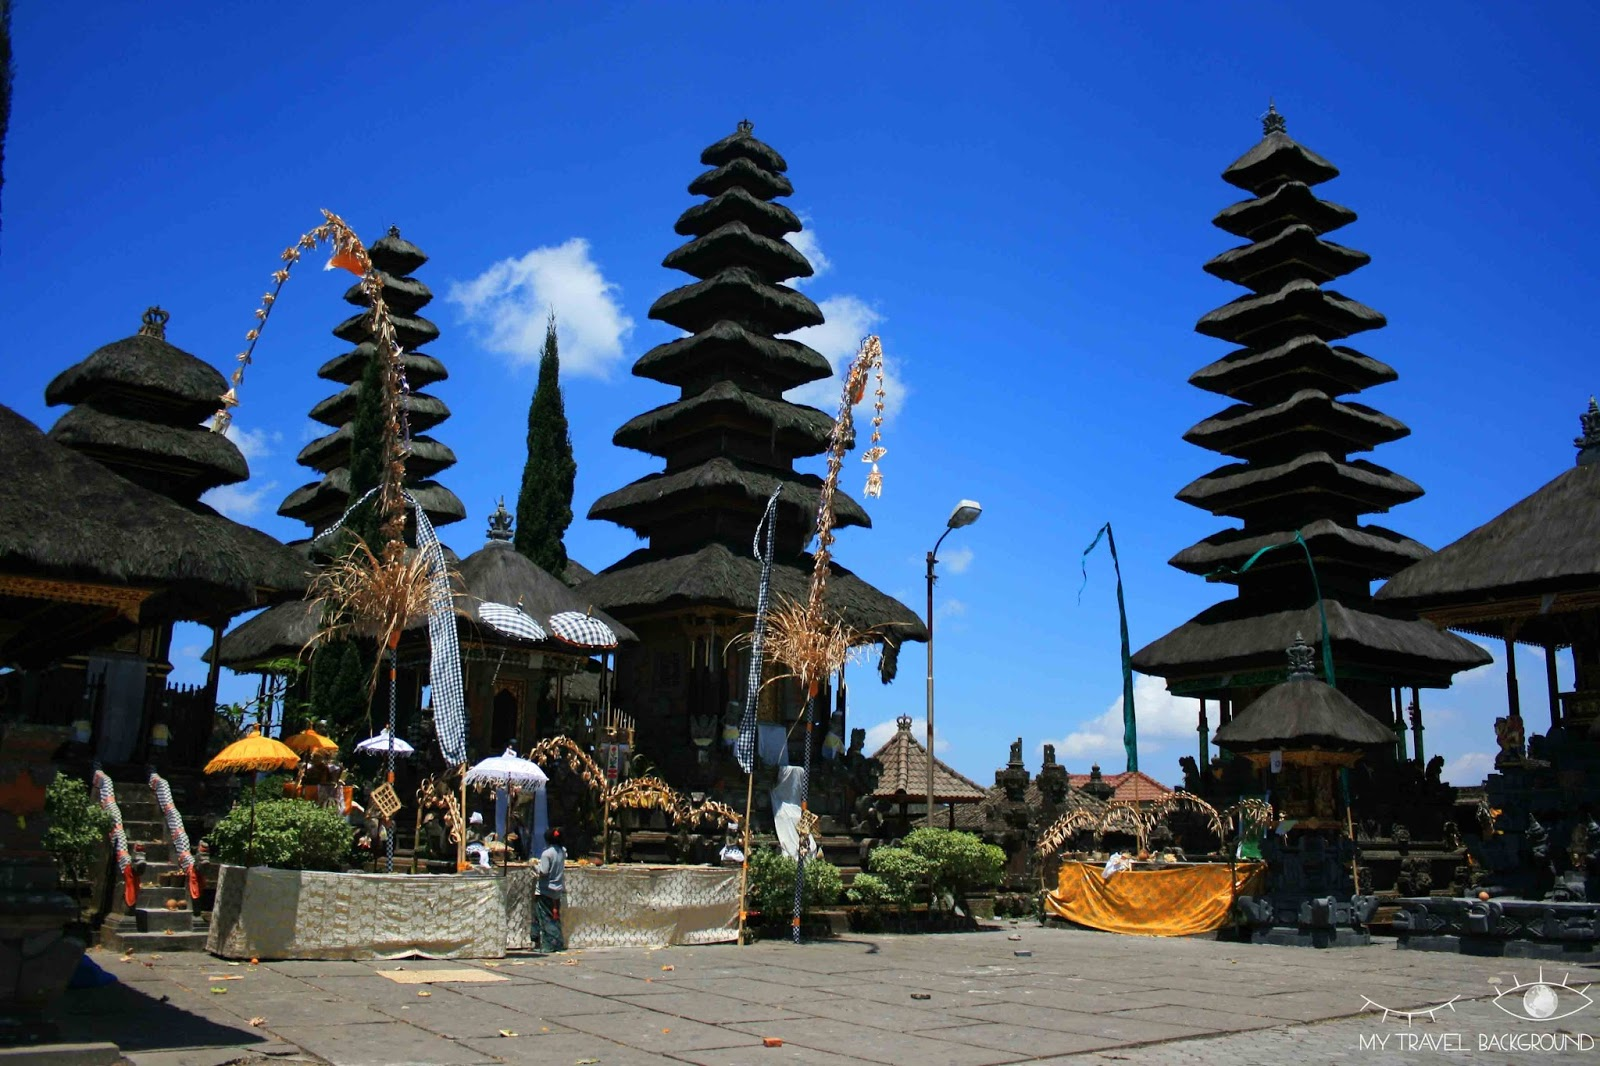 My Travel background : Mon road Trip en Indonésie, Bali